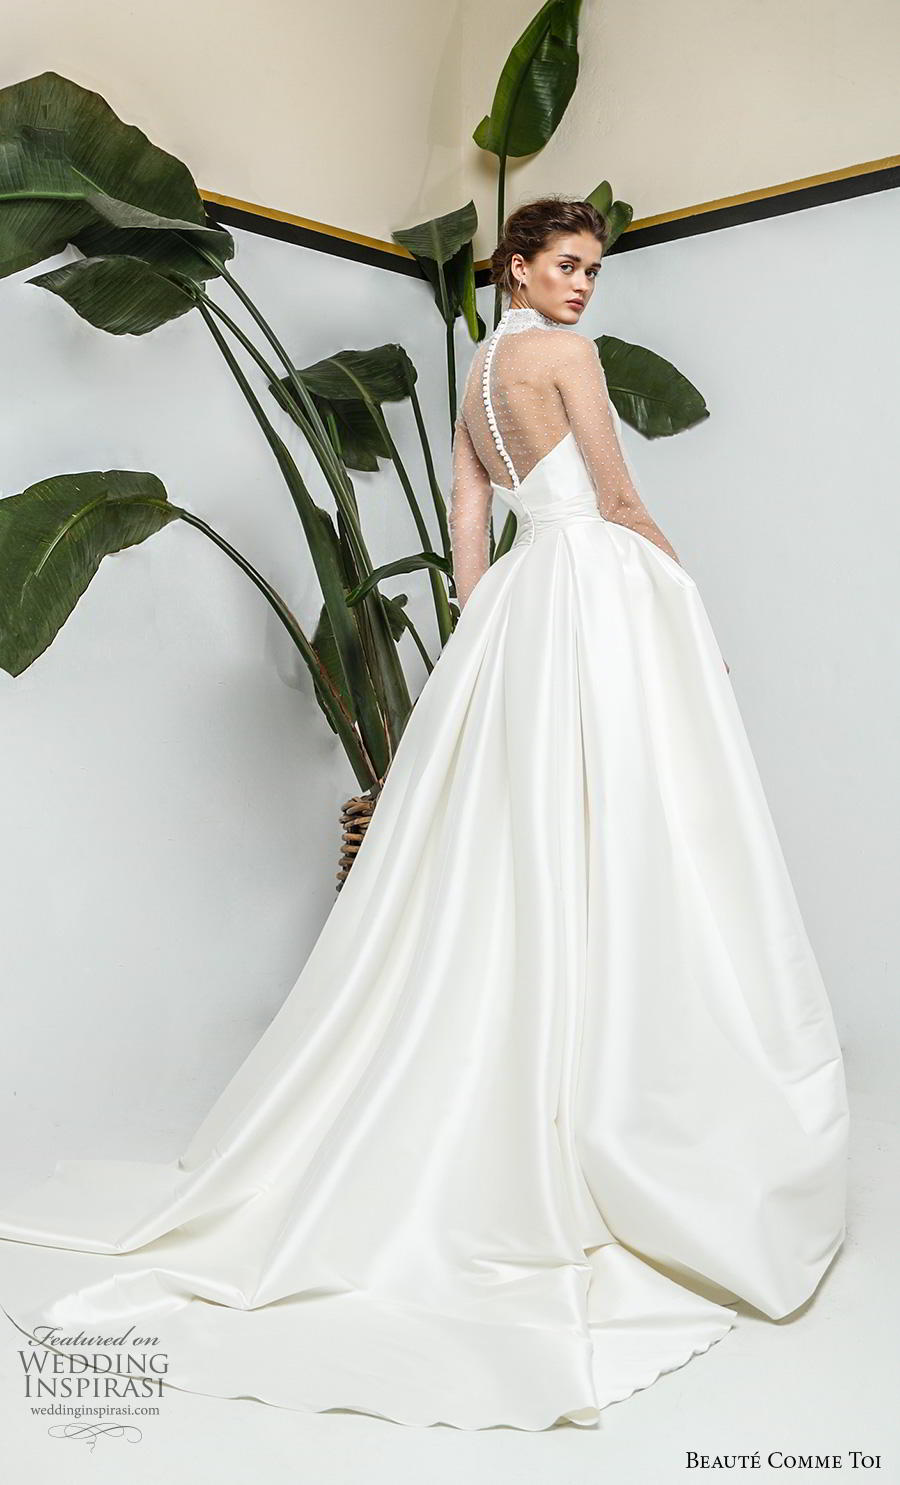 beaute comme toi 2019 bridal long sleeves illusion high neck sweetheart neckline simple minimalist romantic princess ball gown a  line wedding dress sheer button back chapel train (myriam) bv